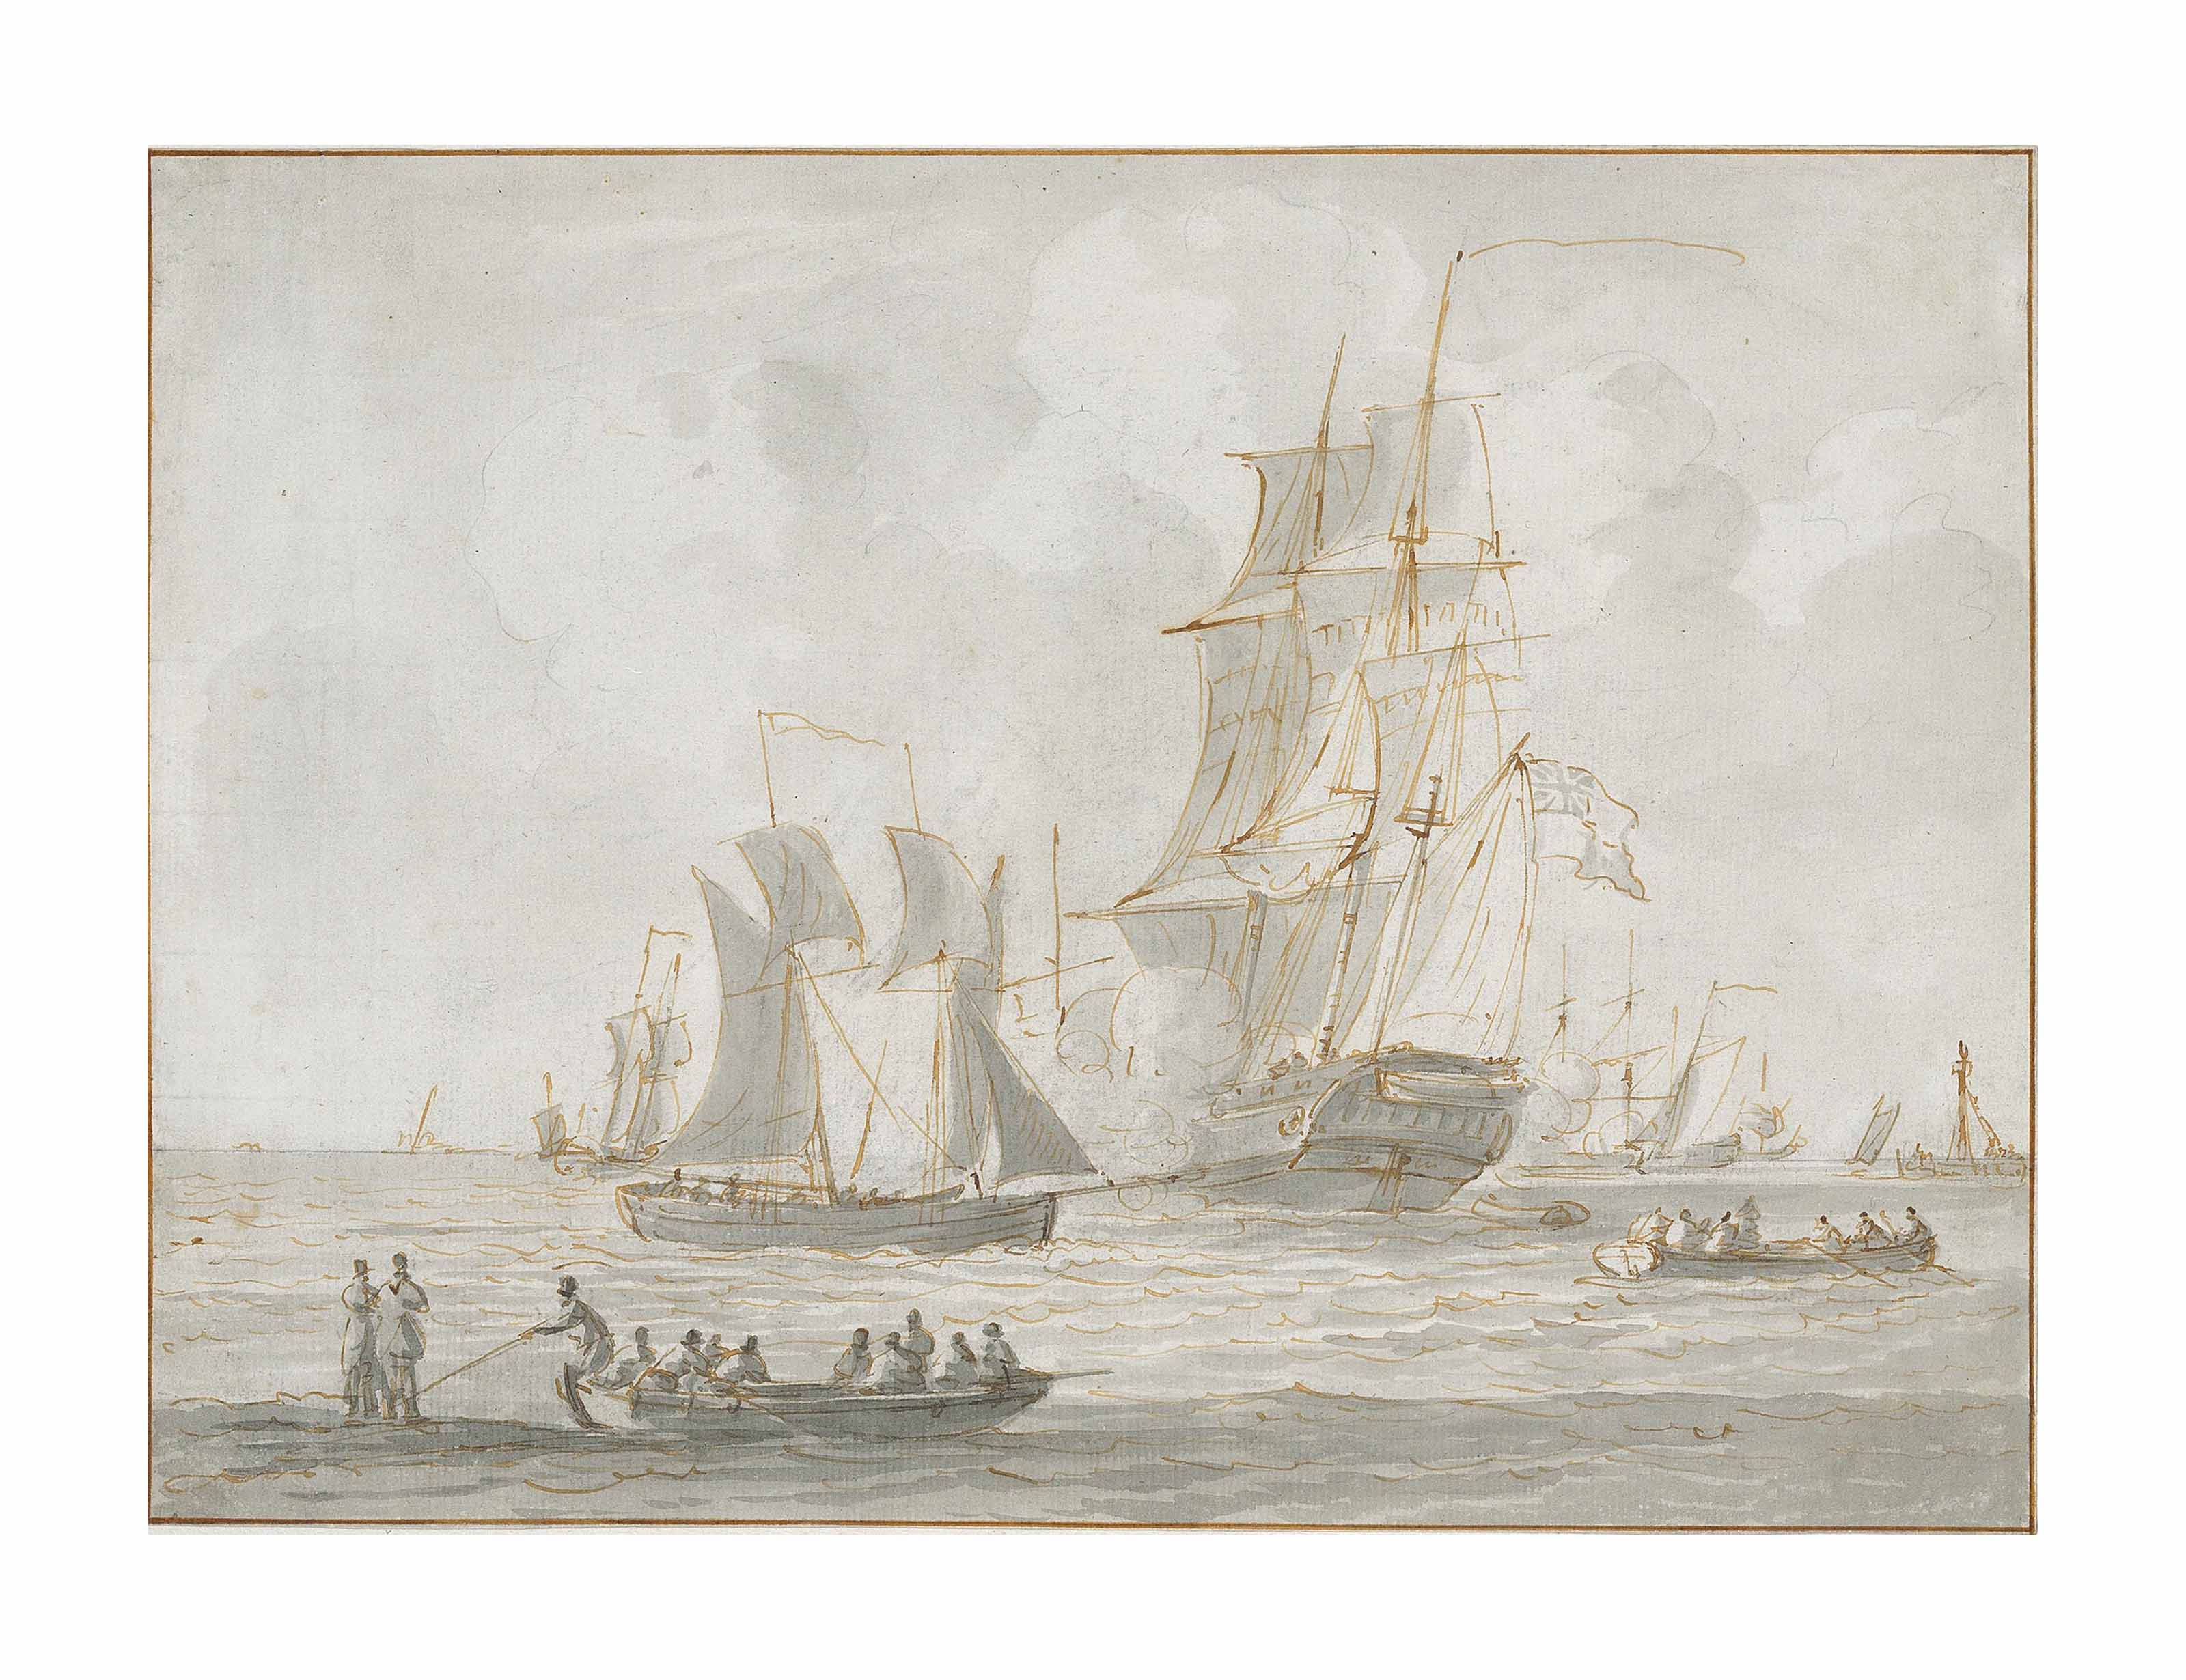 An English frigate firing a salute in crowded waters